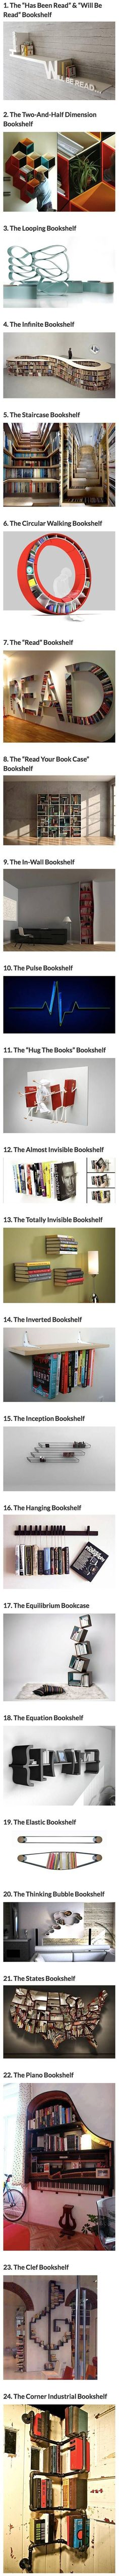 Interesting looking bookshelves. Practical bookshelves need not apply.